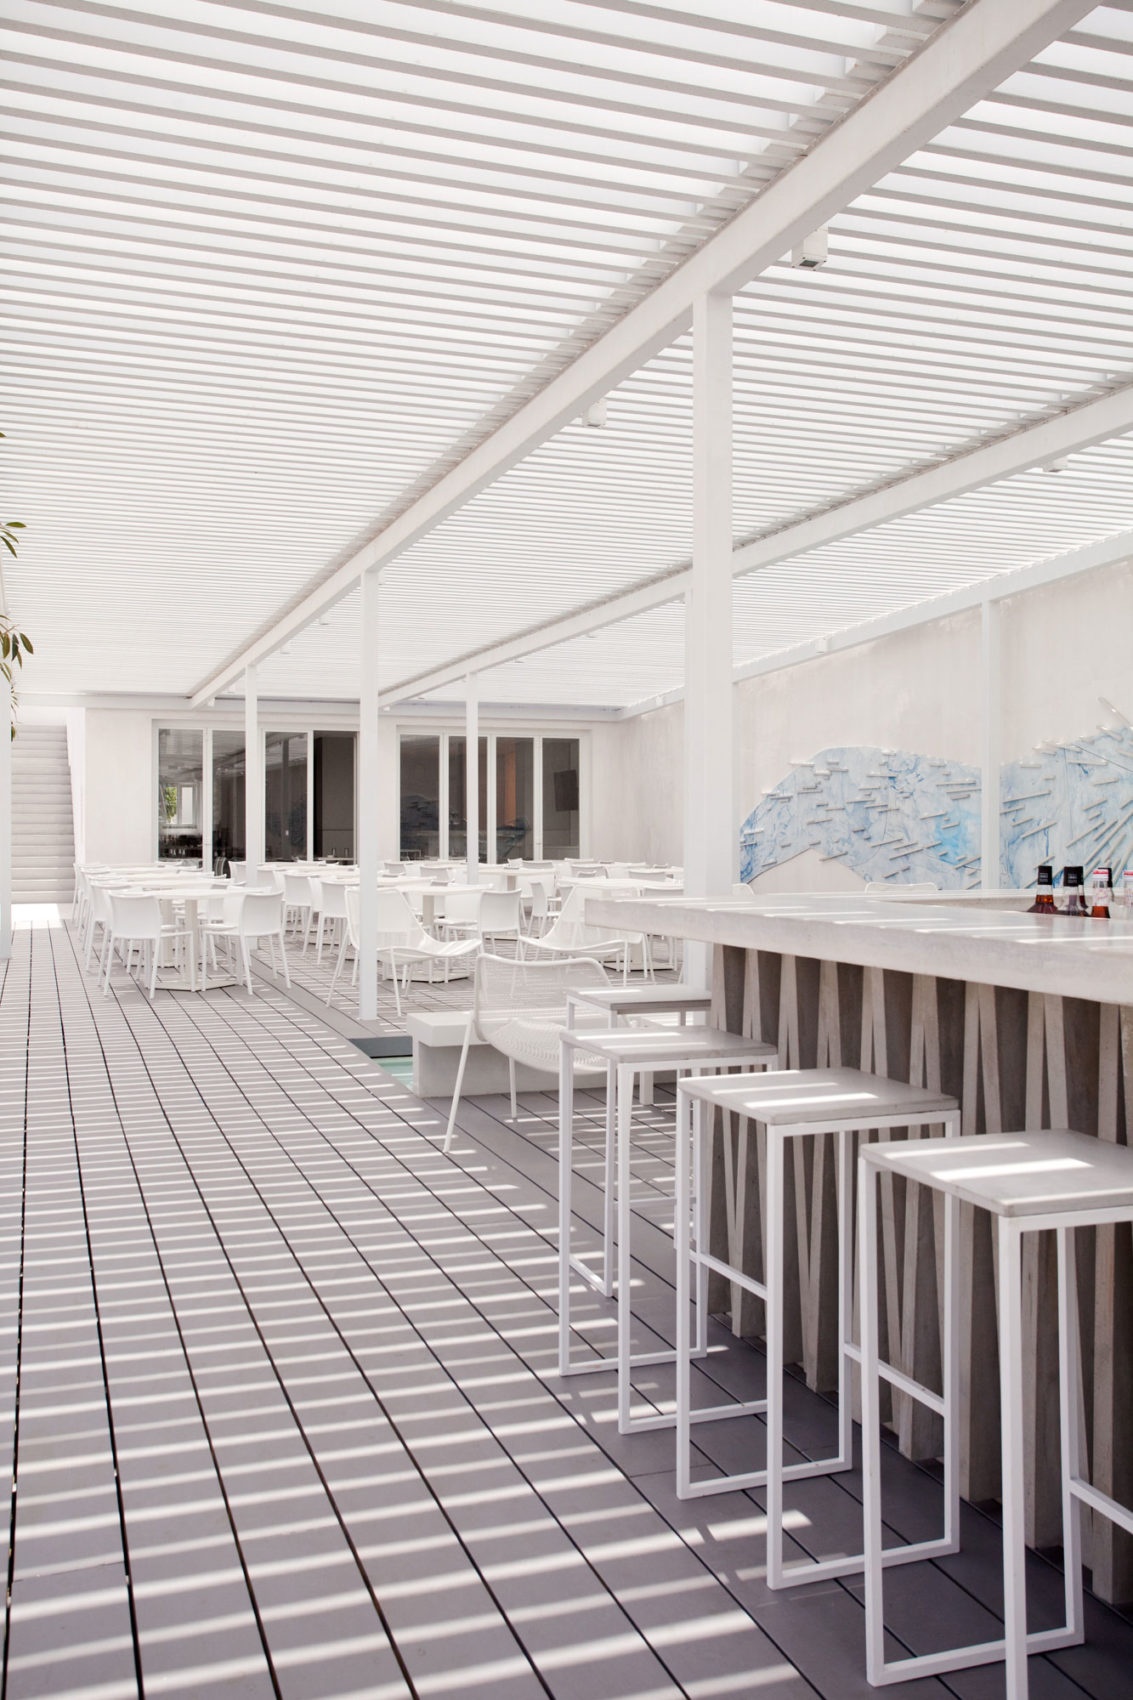 Relux Ios Hotel by A31 ARCHITECTURE (13)